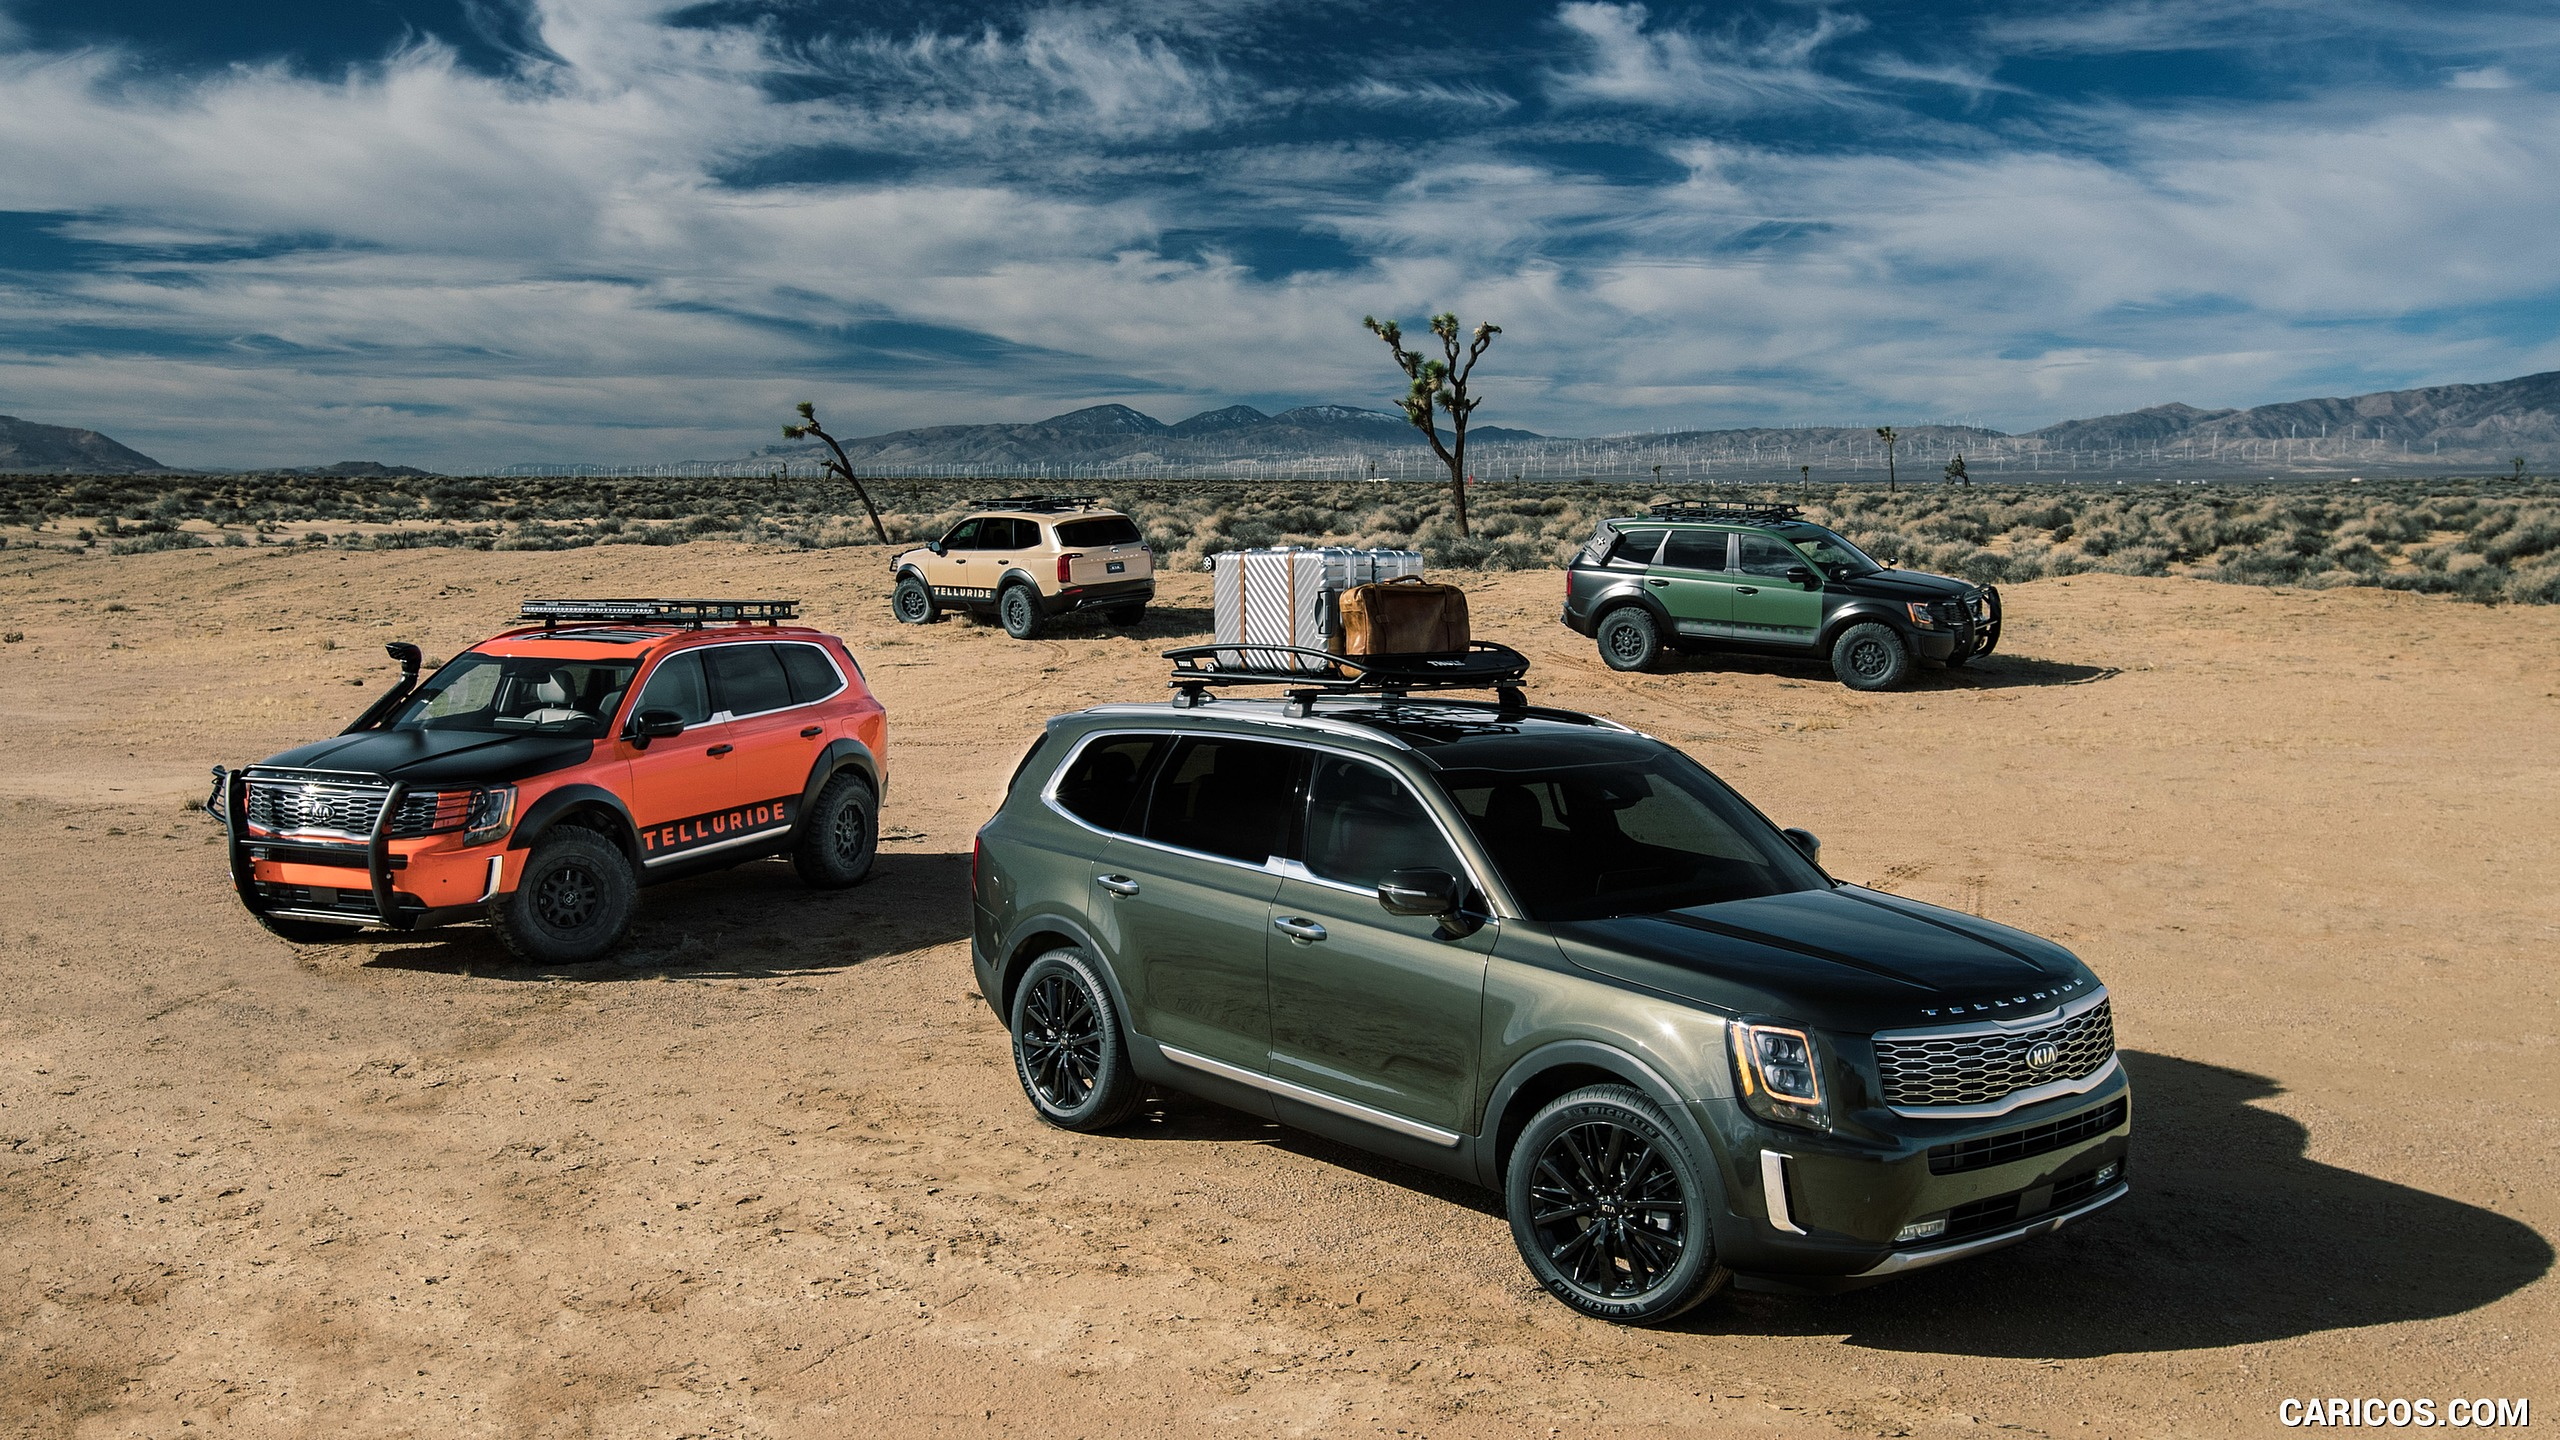 2020 Kia Telluride HD Wallpaper 7 2560x1440